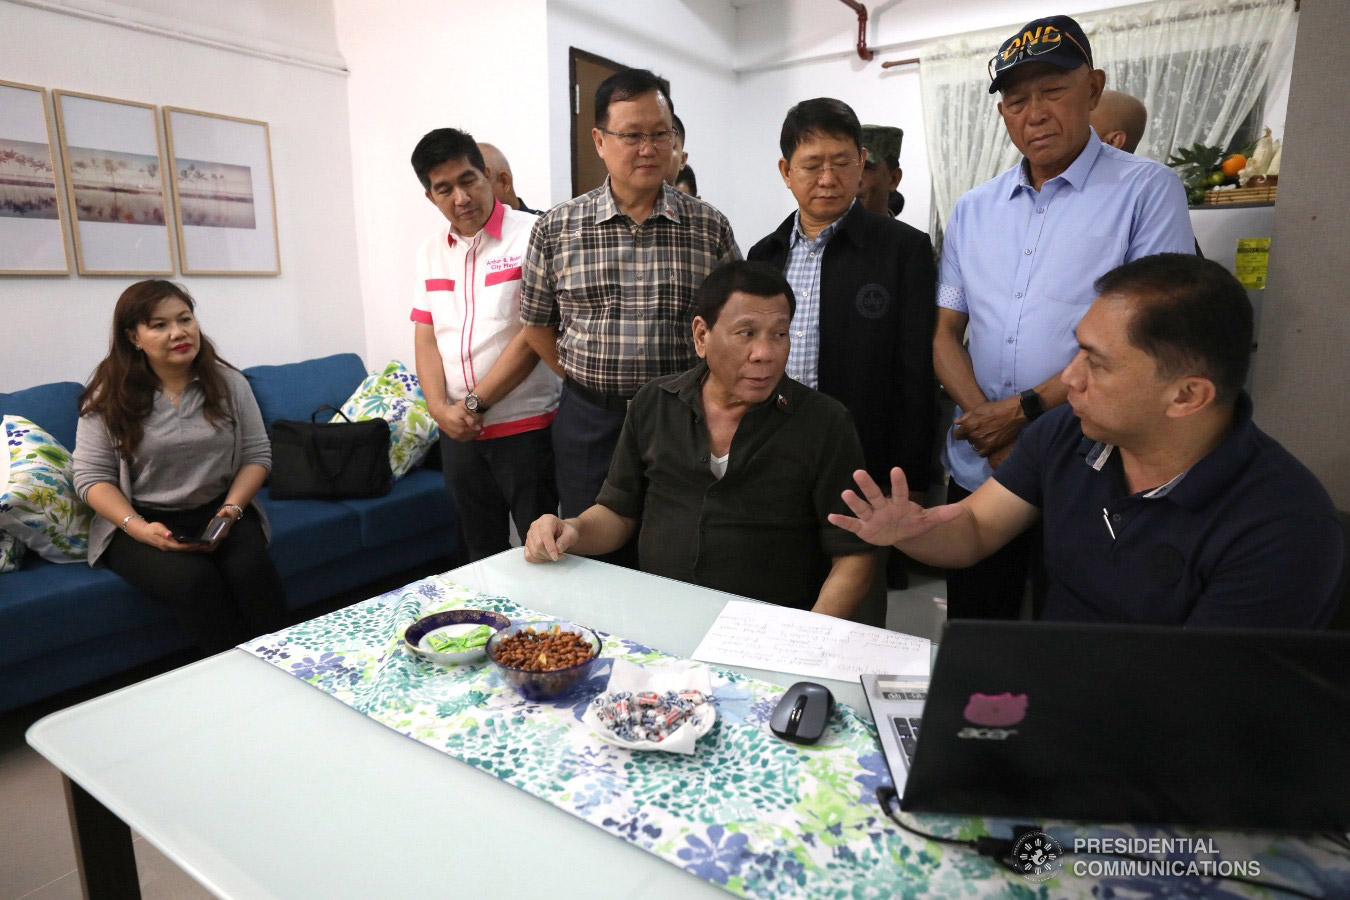 """President Rodrigo Roa Duterte listens to the briefing of National Housing Authority General Manager Marcelino Escalada Jr. as he inspects one of the housing units at the Pleasant View Residences in the City of San Jose del Monte, Bulacan which were turned over to wounded soldiers and law enforcers during a ceremony held on January 10, 2019. Joining the President are Ms. Cielito """"Honeylet"""" Avanceña, Housing and Urban Development Coordinating Council Chair Eduardo del Rosario, Interior and Local Government Secretary Eduardo Año, and Defense Secretary Delfin Lorenzana. TOTO LOZANO/PRESIDENTIAL PHOTO"""